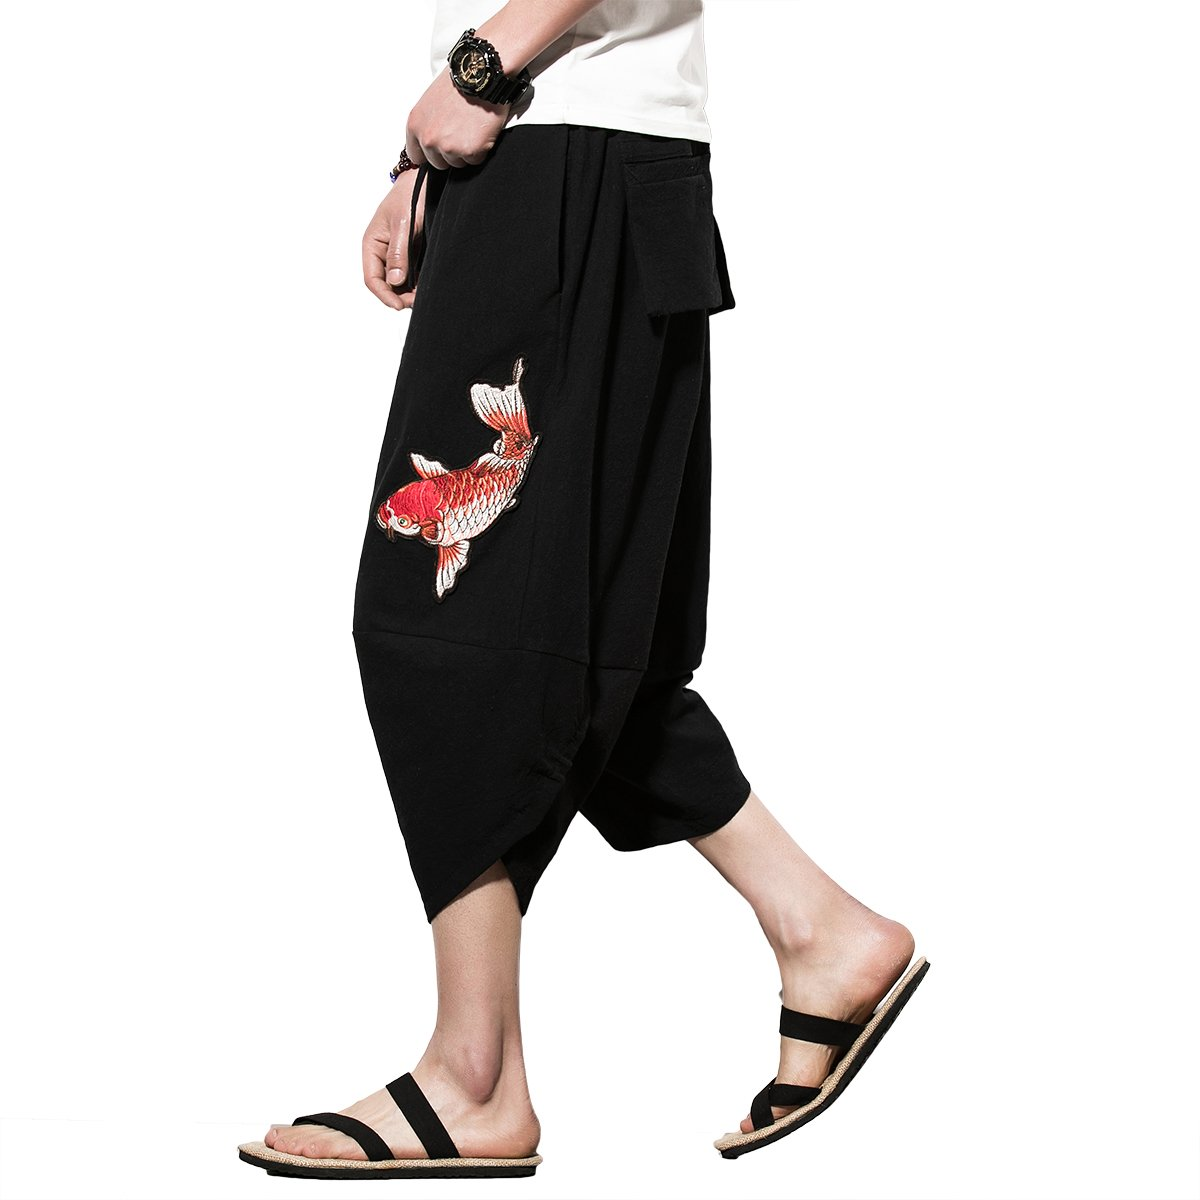 Mirecoo Men's Summer Boho Hippie Wide Leg Cotton Baggy Harem Pants Trousers with Pockets